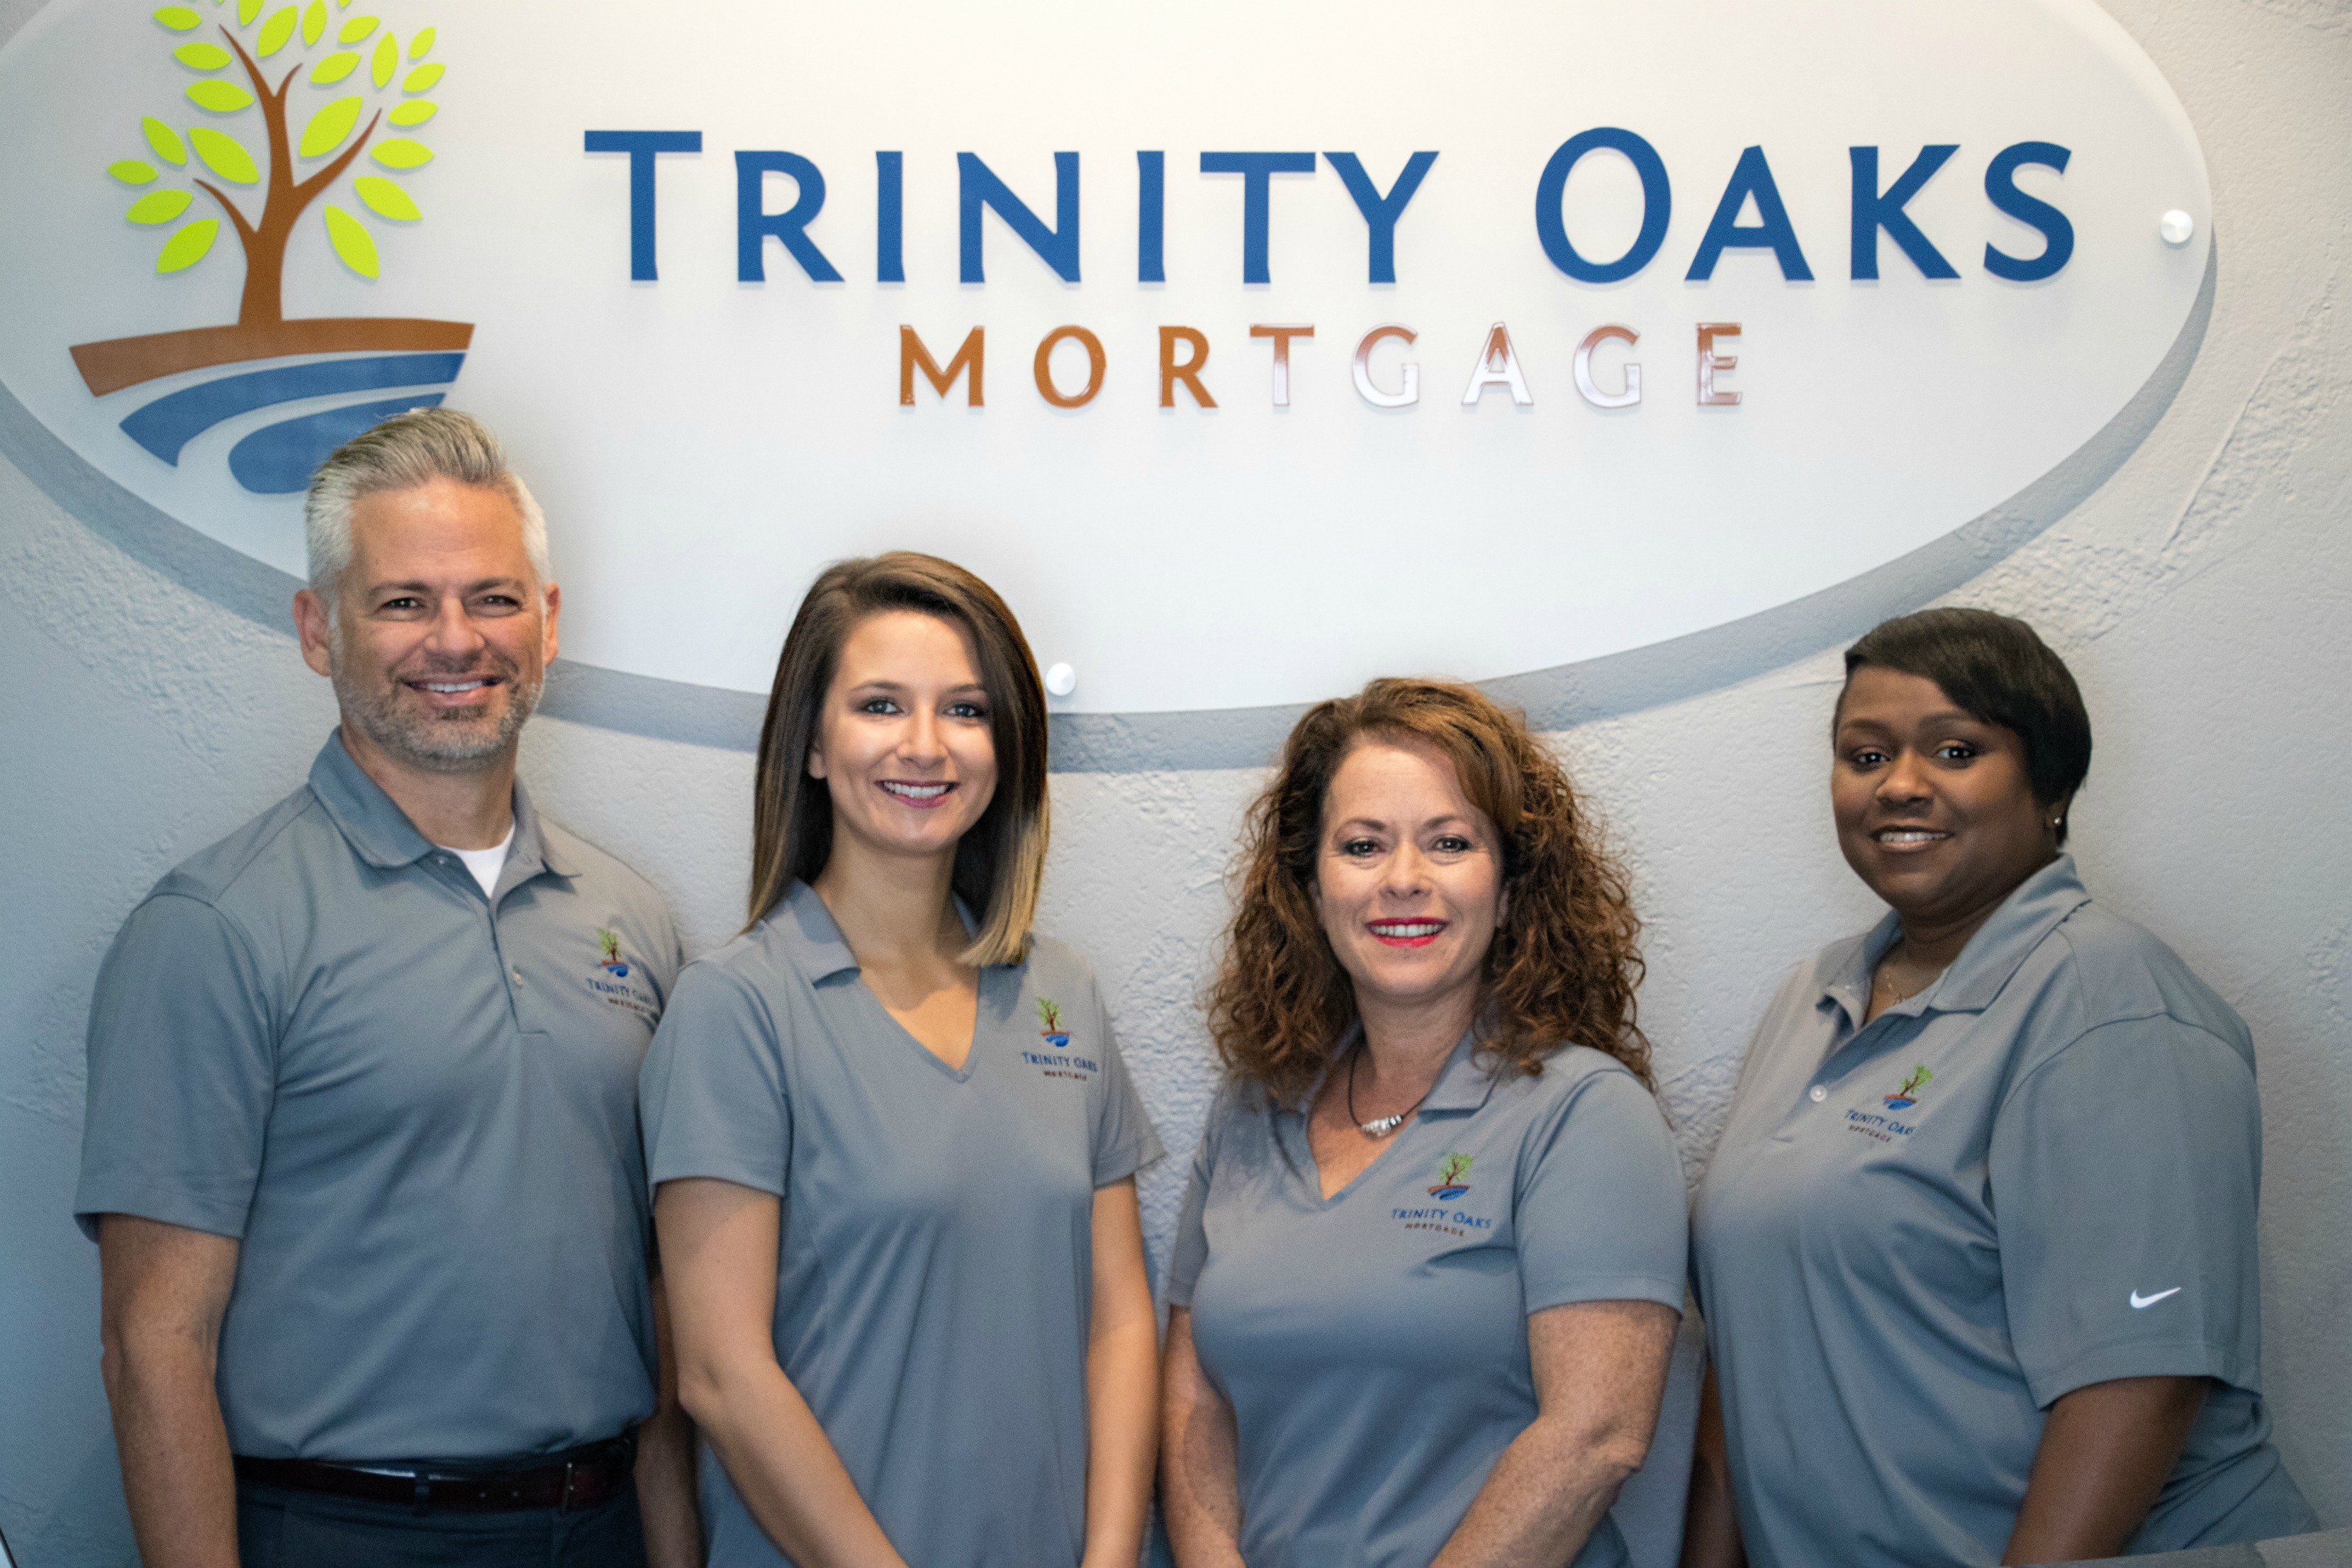 Trinity Oaks Mortgage image 3